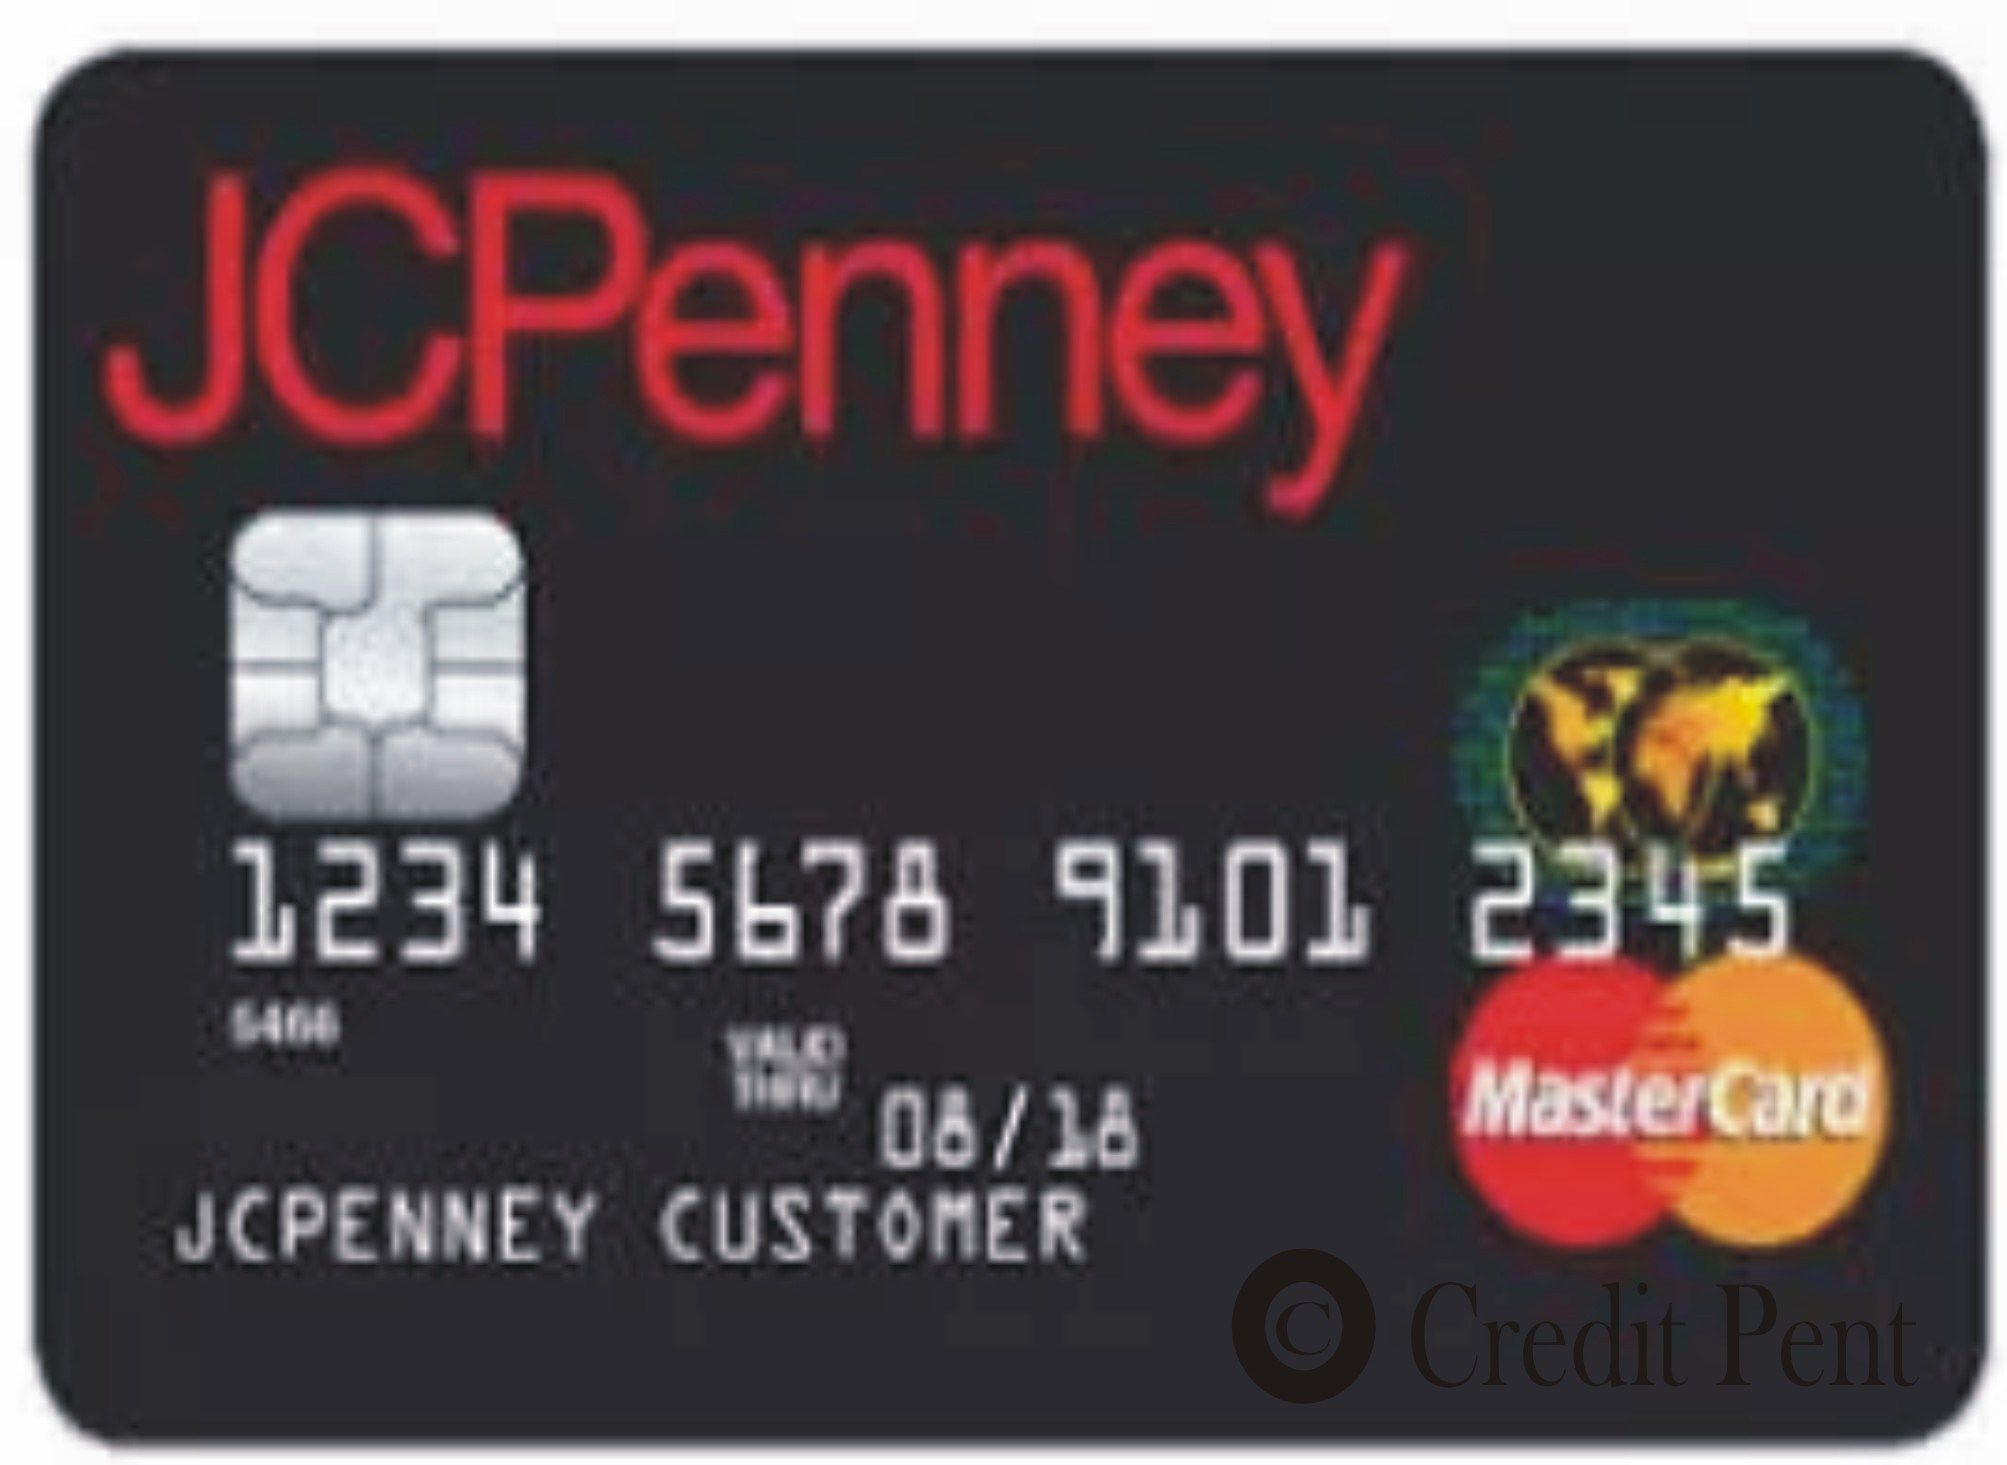 Jcpenney rewards credit card login account payment